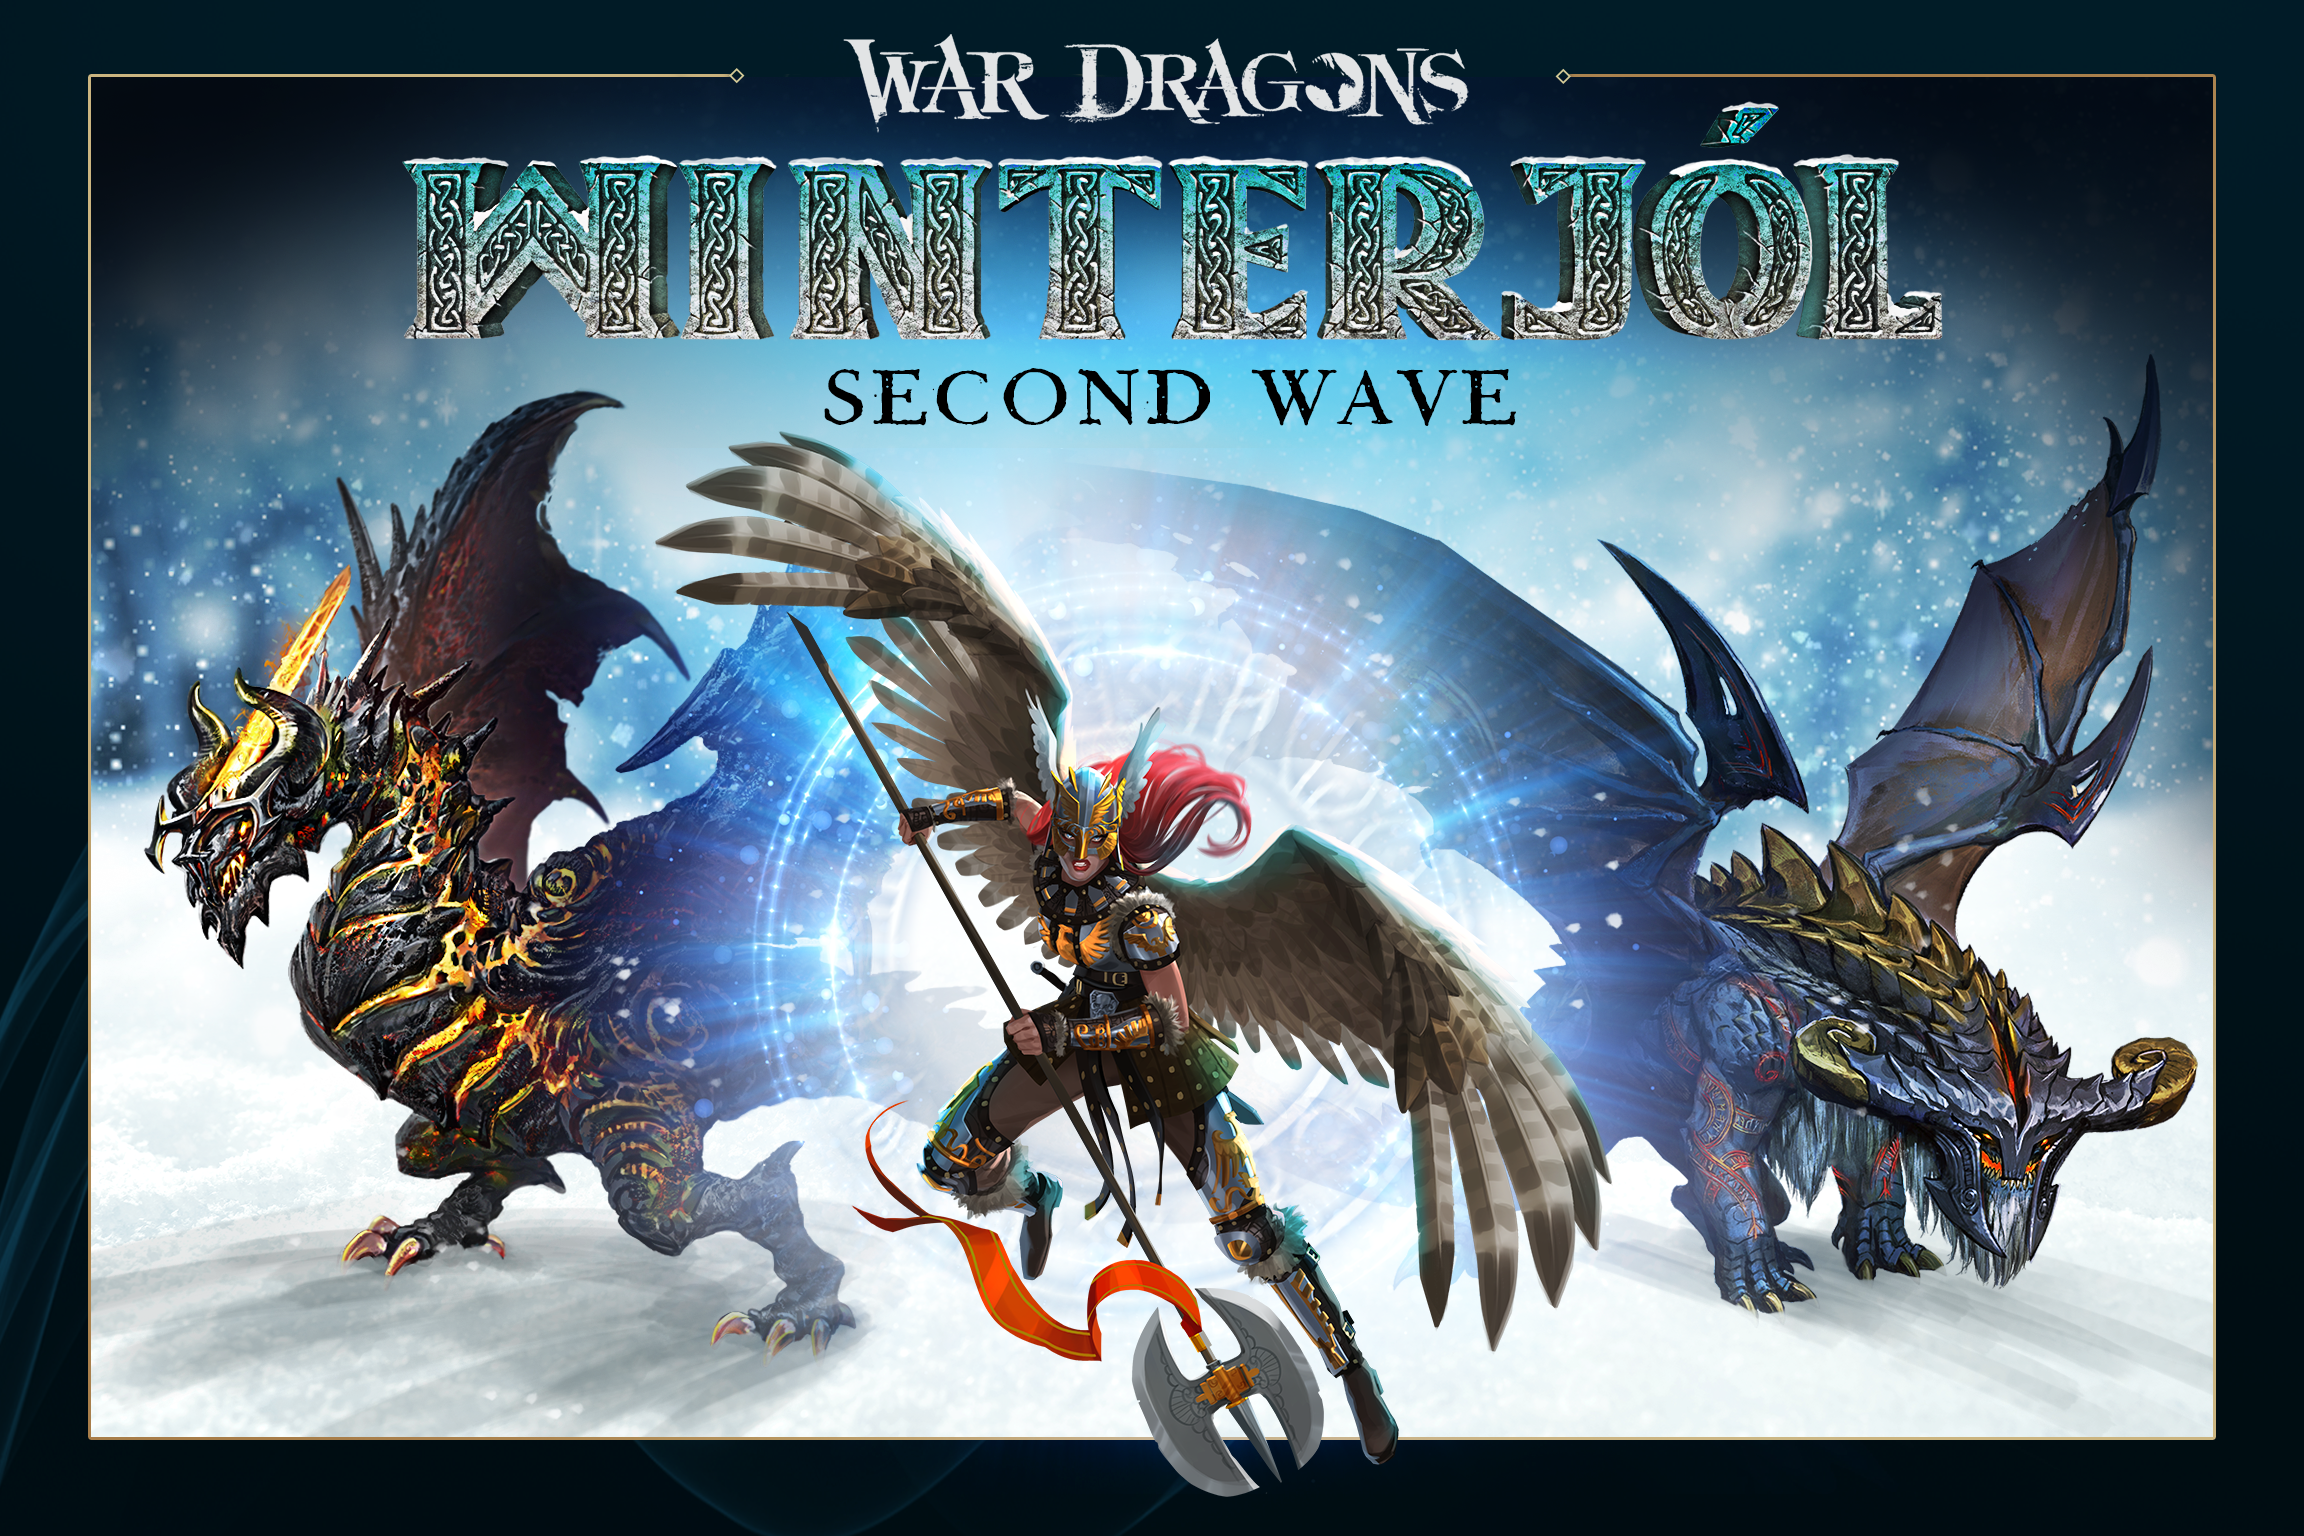 War Dragons - Winterjol Wave 2